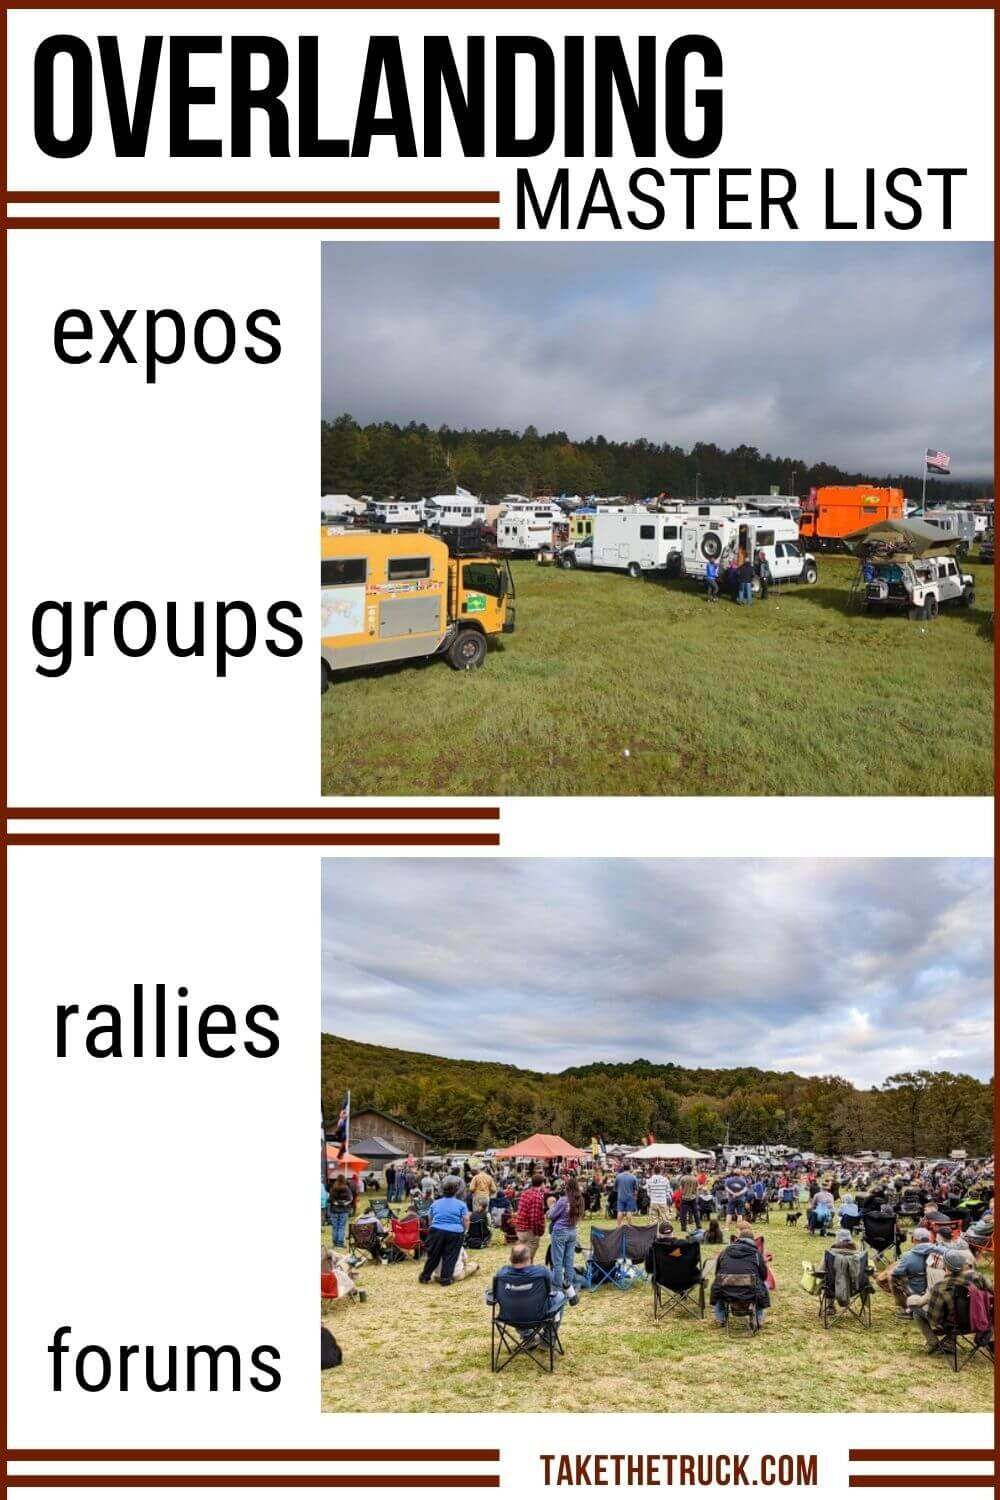 Are you an overlanding beginner wondering how to start overlanding? Use this master list to find an overland event, overland group, forum, overland expo, or overland rally all about overland travel!